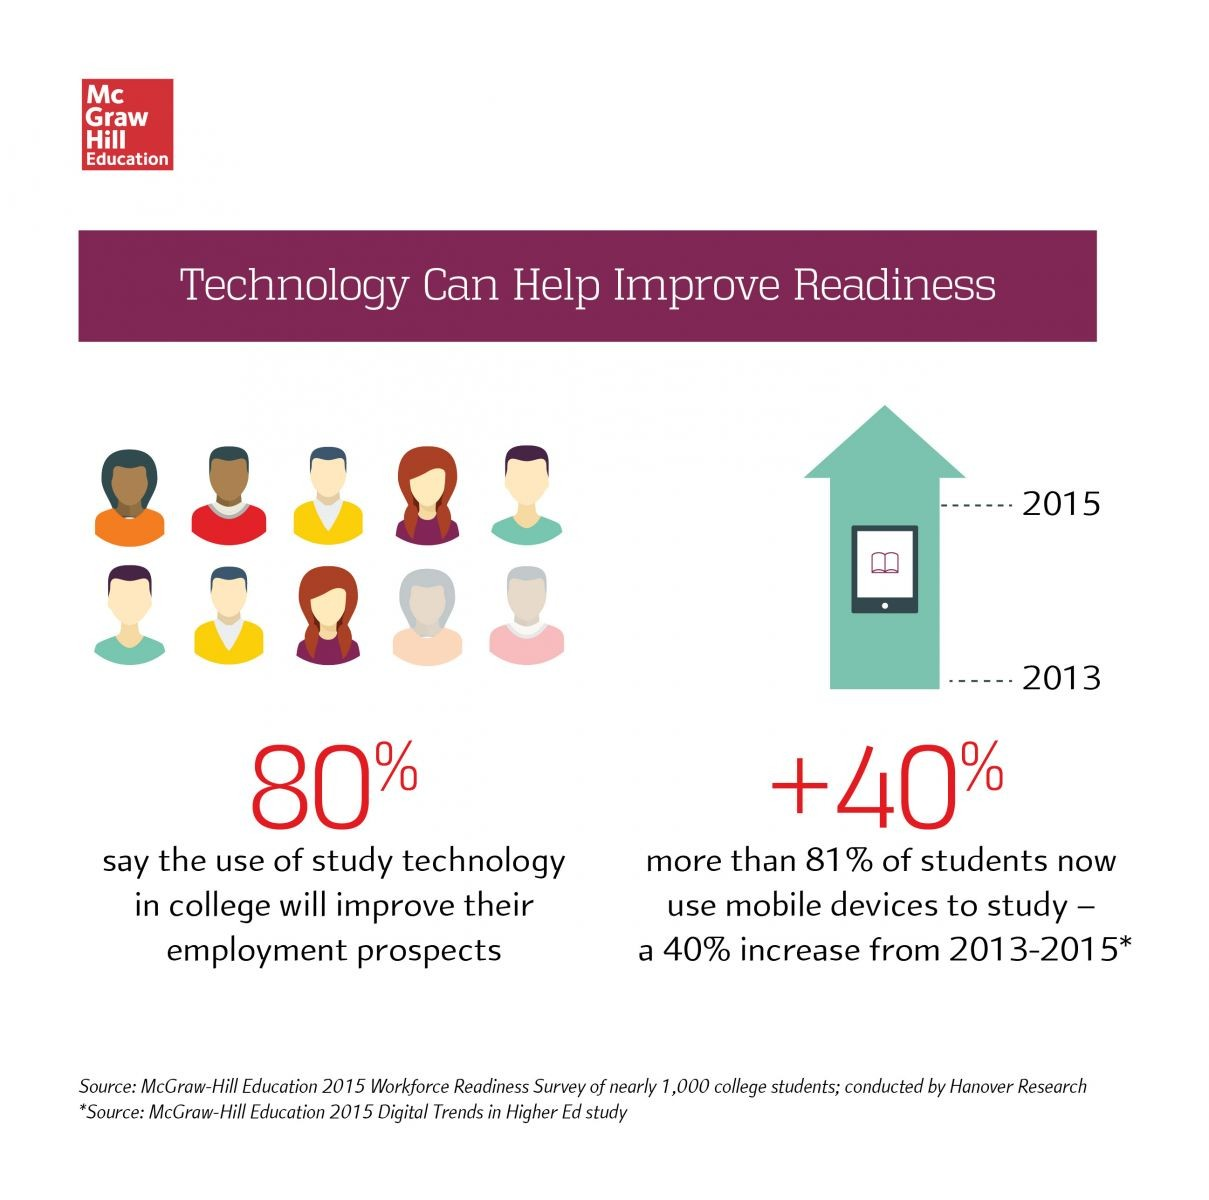 Technology can help improve readiness to join the workforce